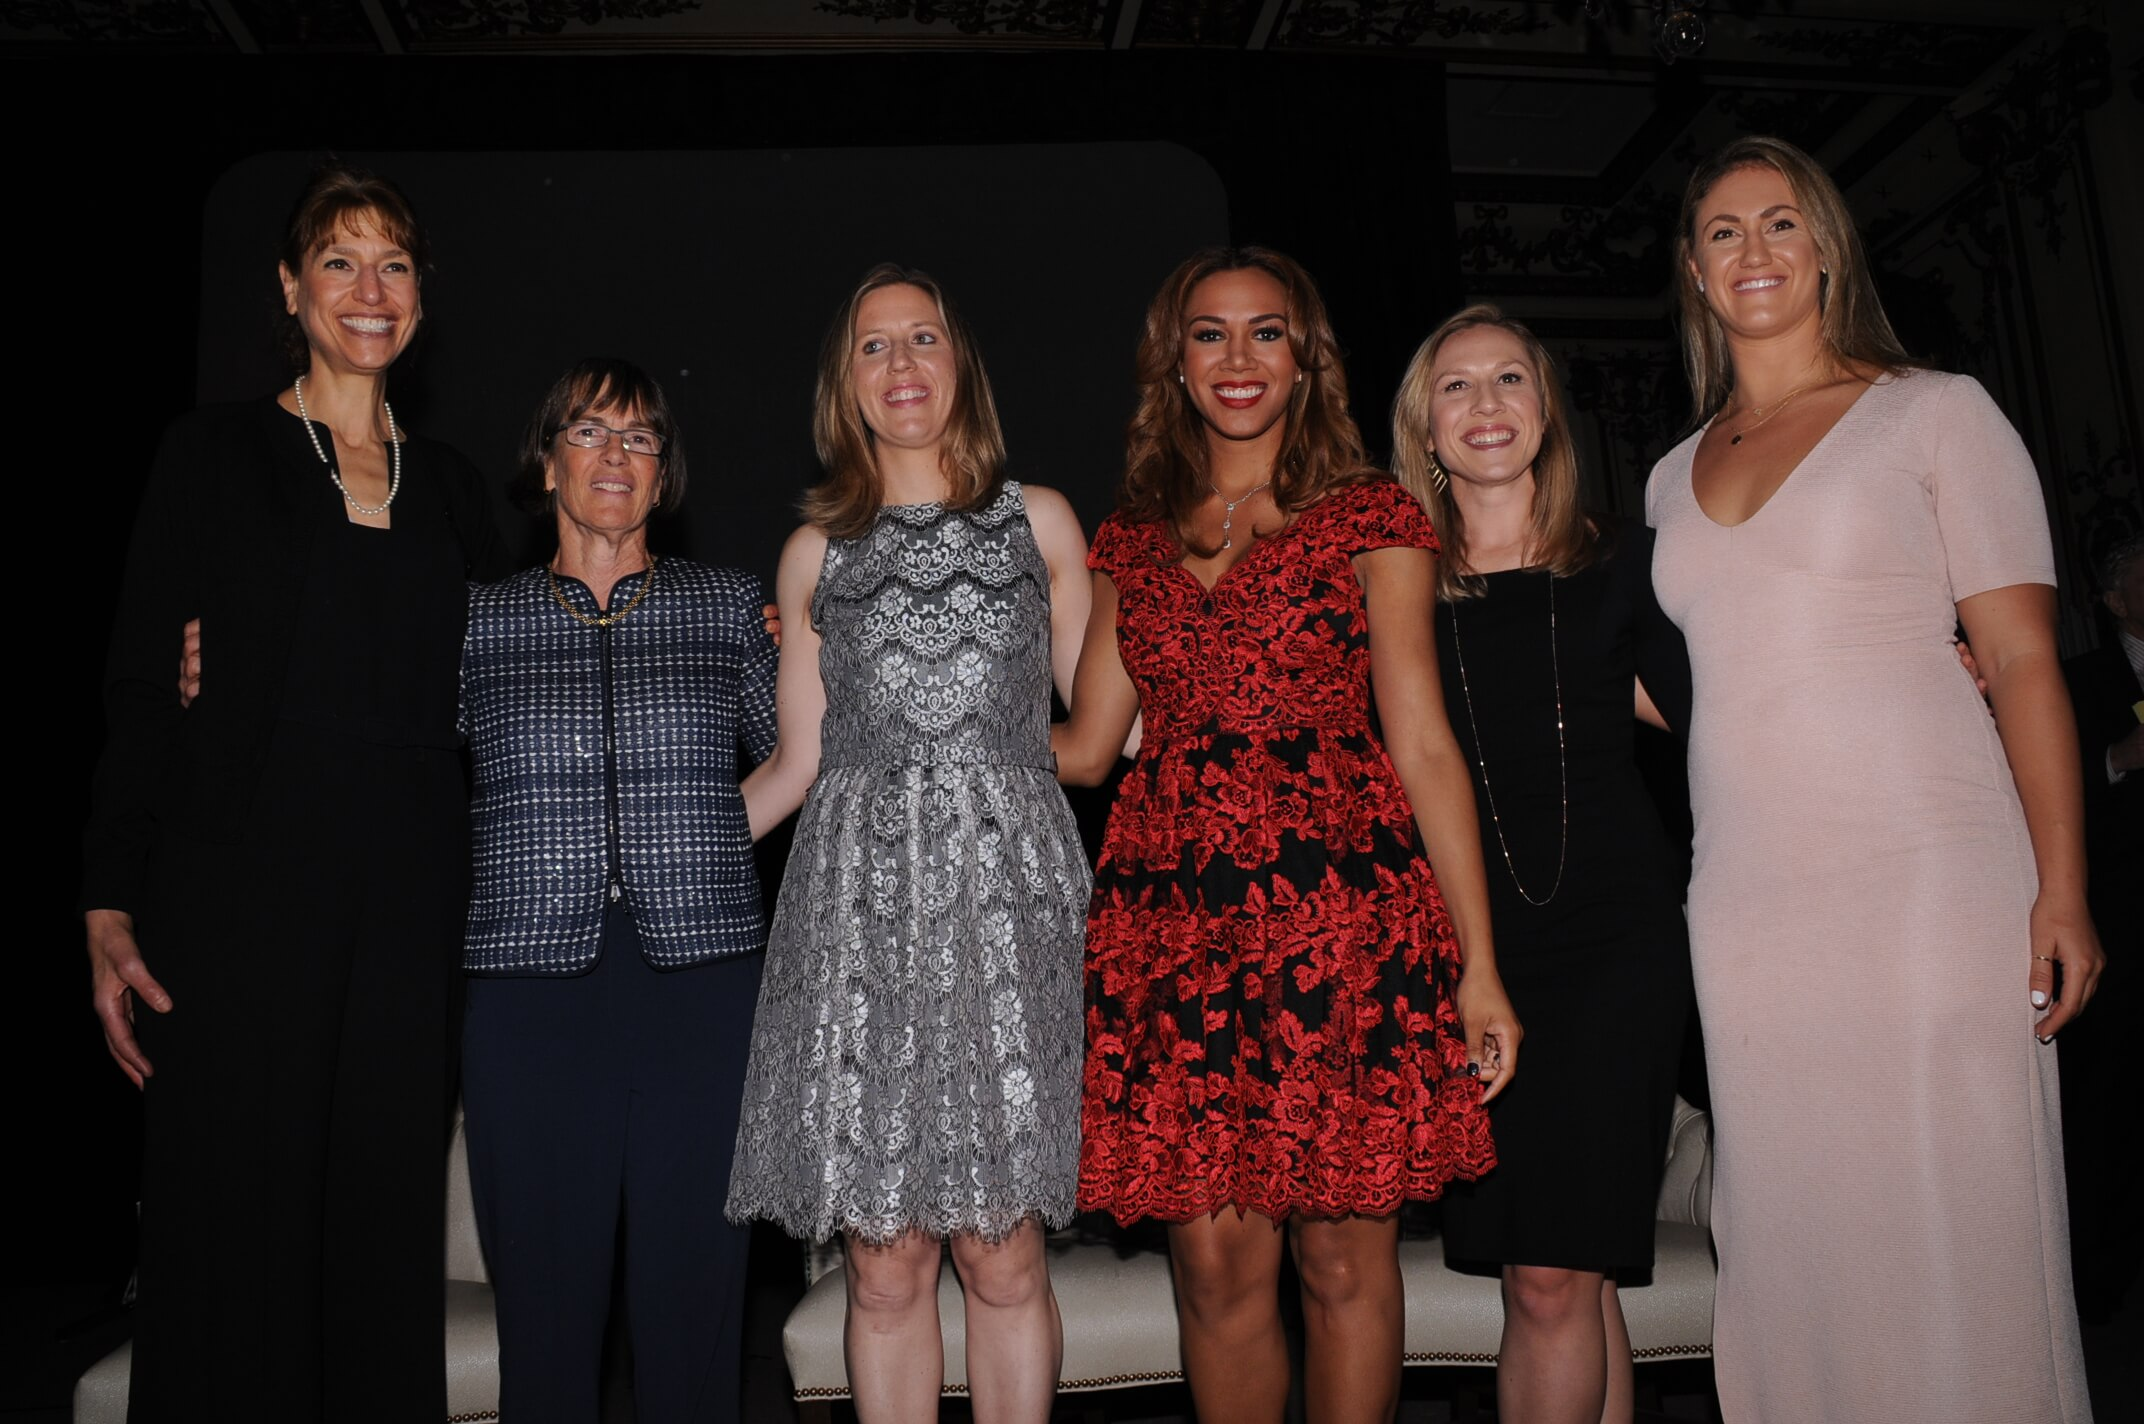 Anita Kaplan Fiedel, Tara VanDerveer, Lindsay Gottlieb, Ros Gold-Onwude, Kate Scott & Ashley Grossman